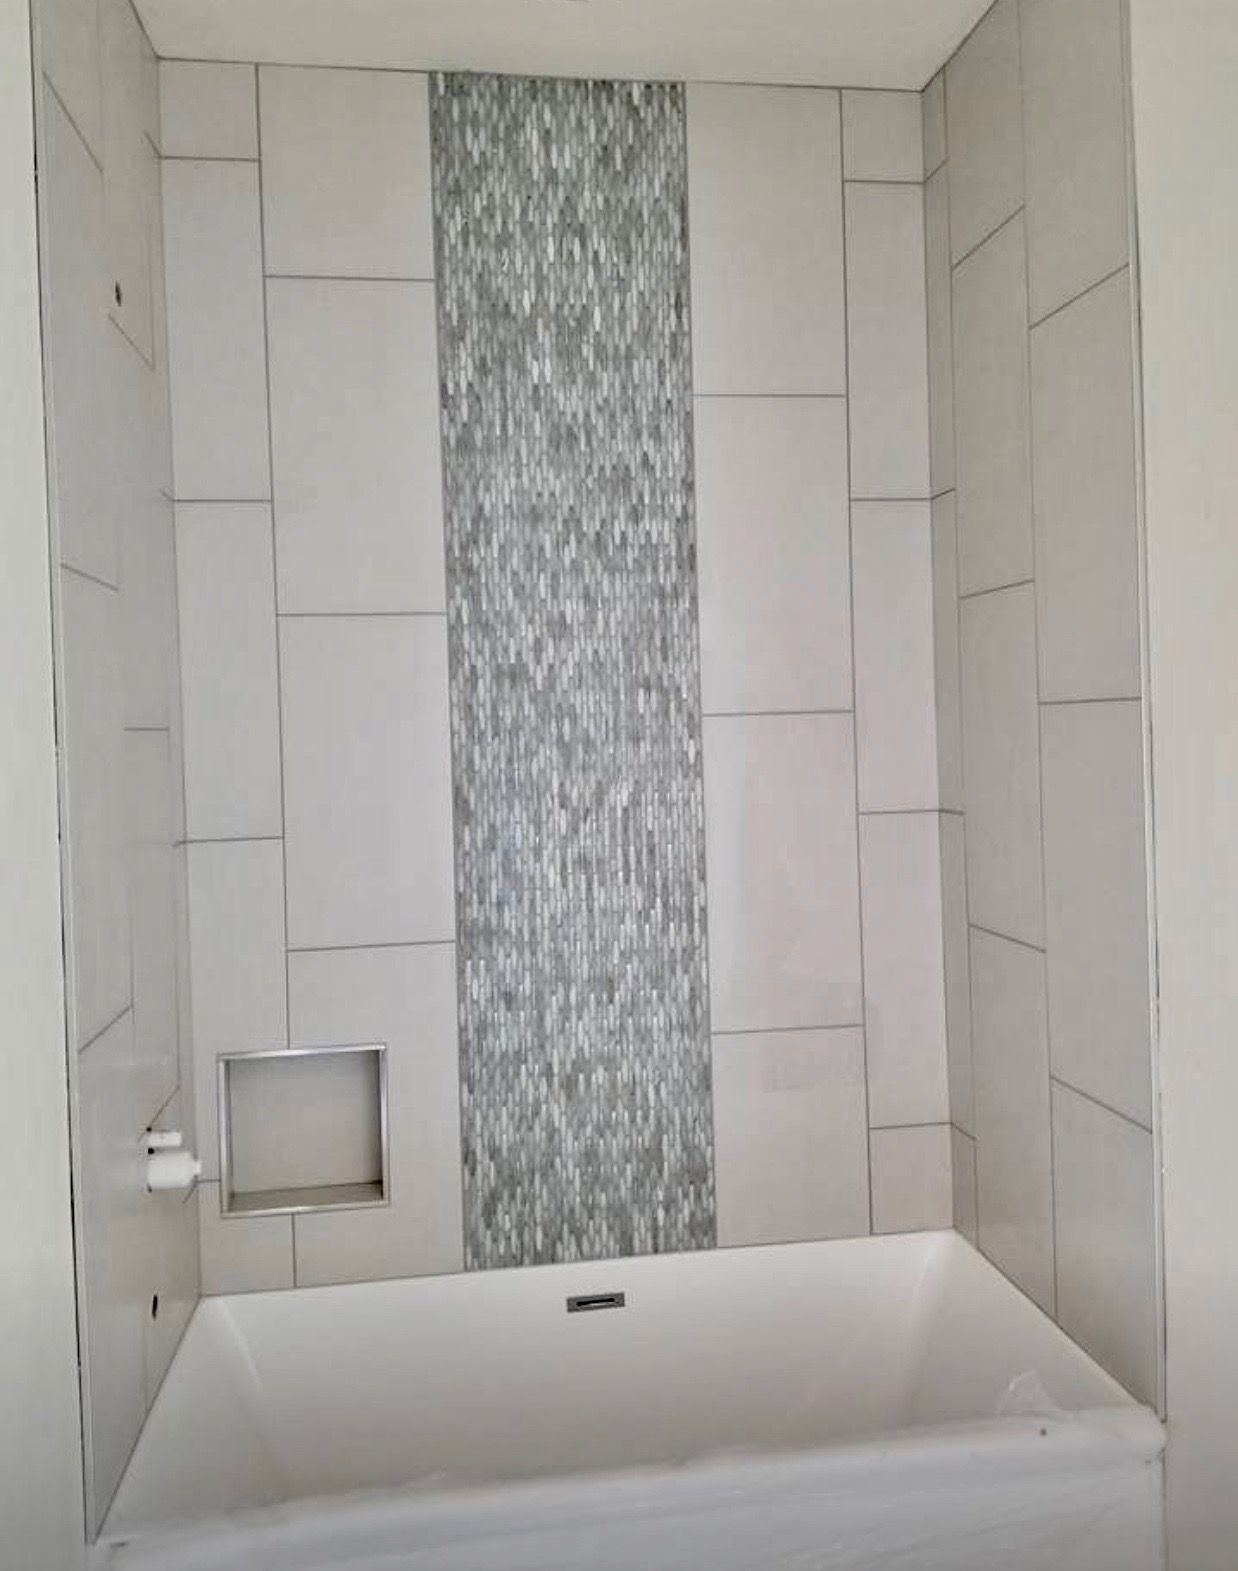 Bath tub tiles surround with mother of pearl accent tile through the ...